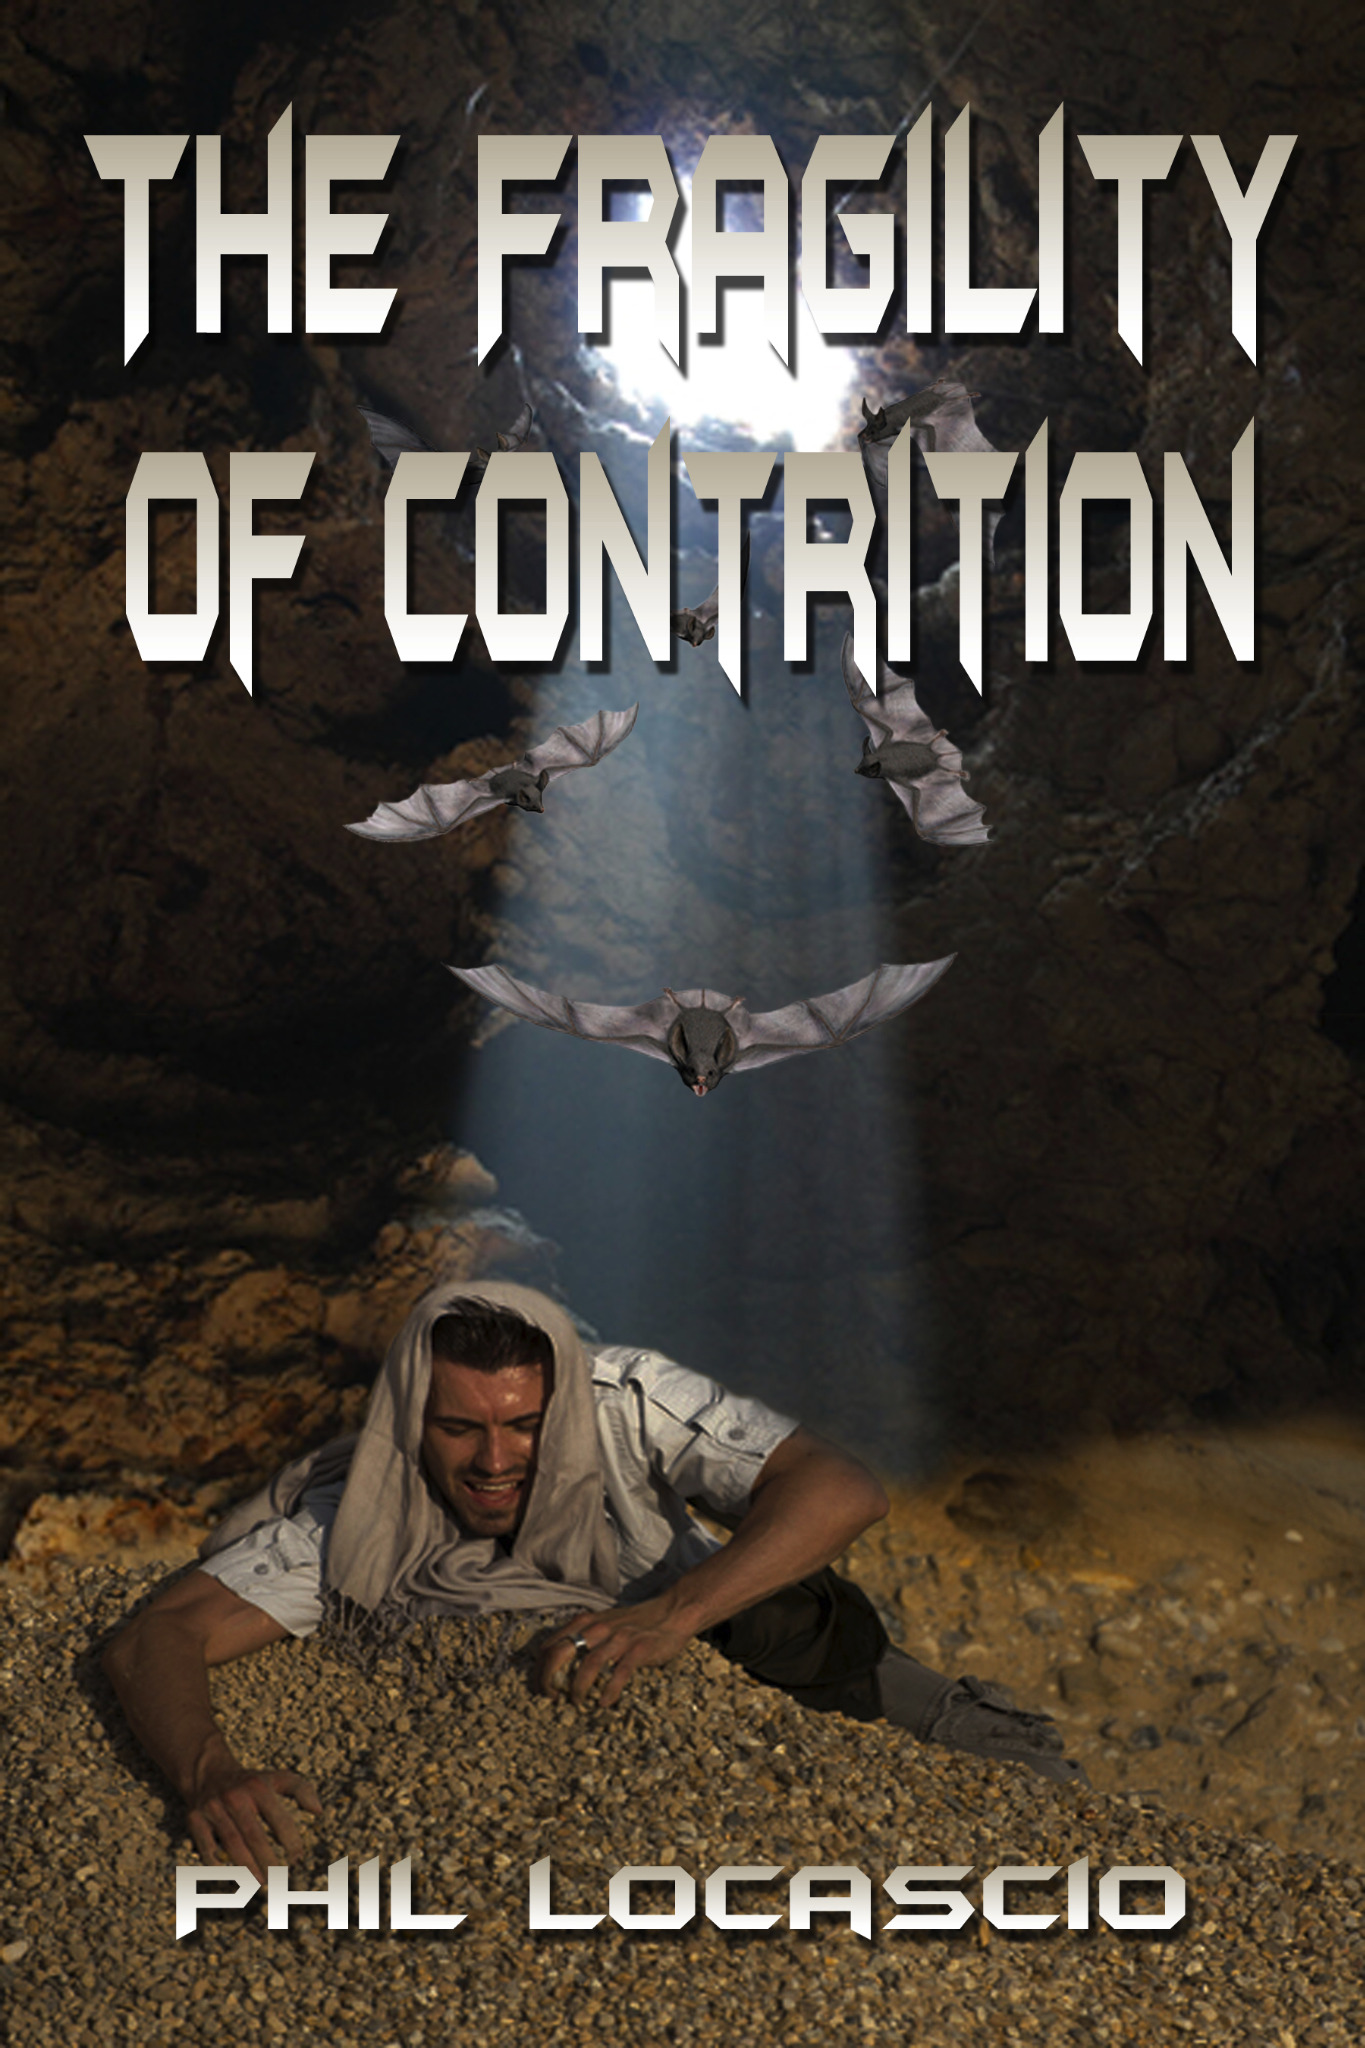 The Fragility of Contrition